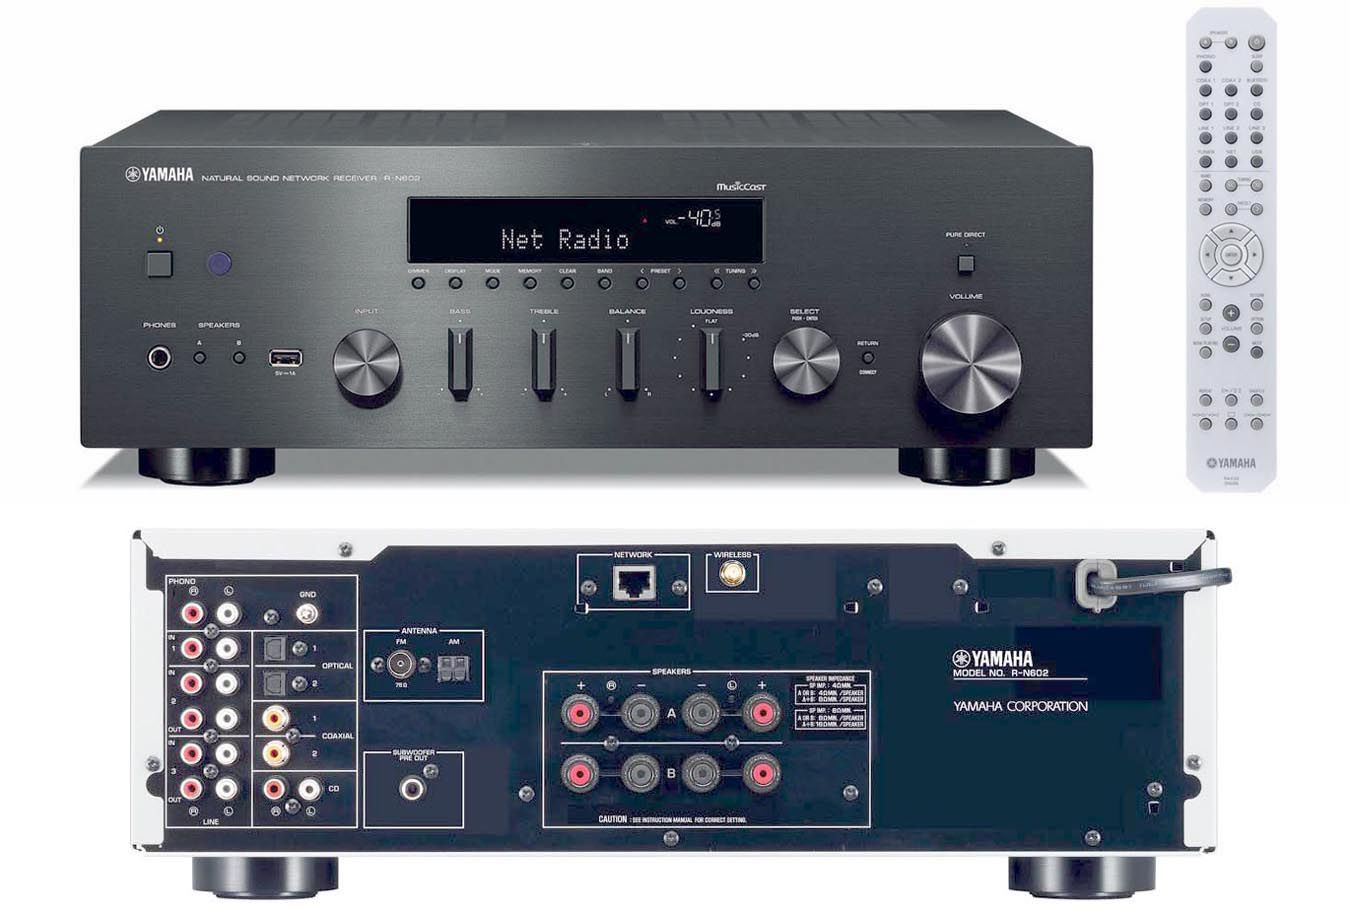 yamaha 39 s r n602 and r n402 stereo receivers with musiccast. Black Bedroom Furniture Sets. Home Design Ideas